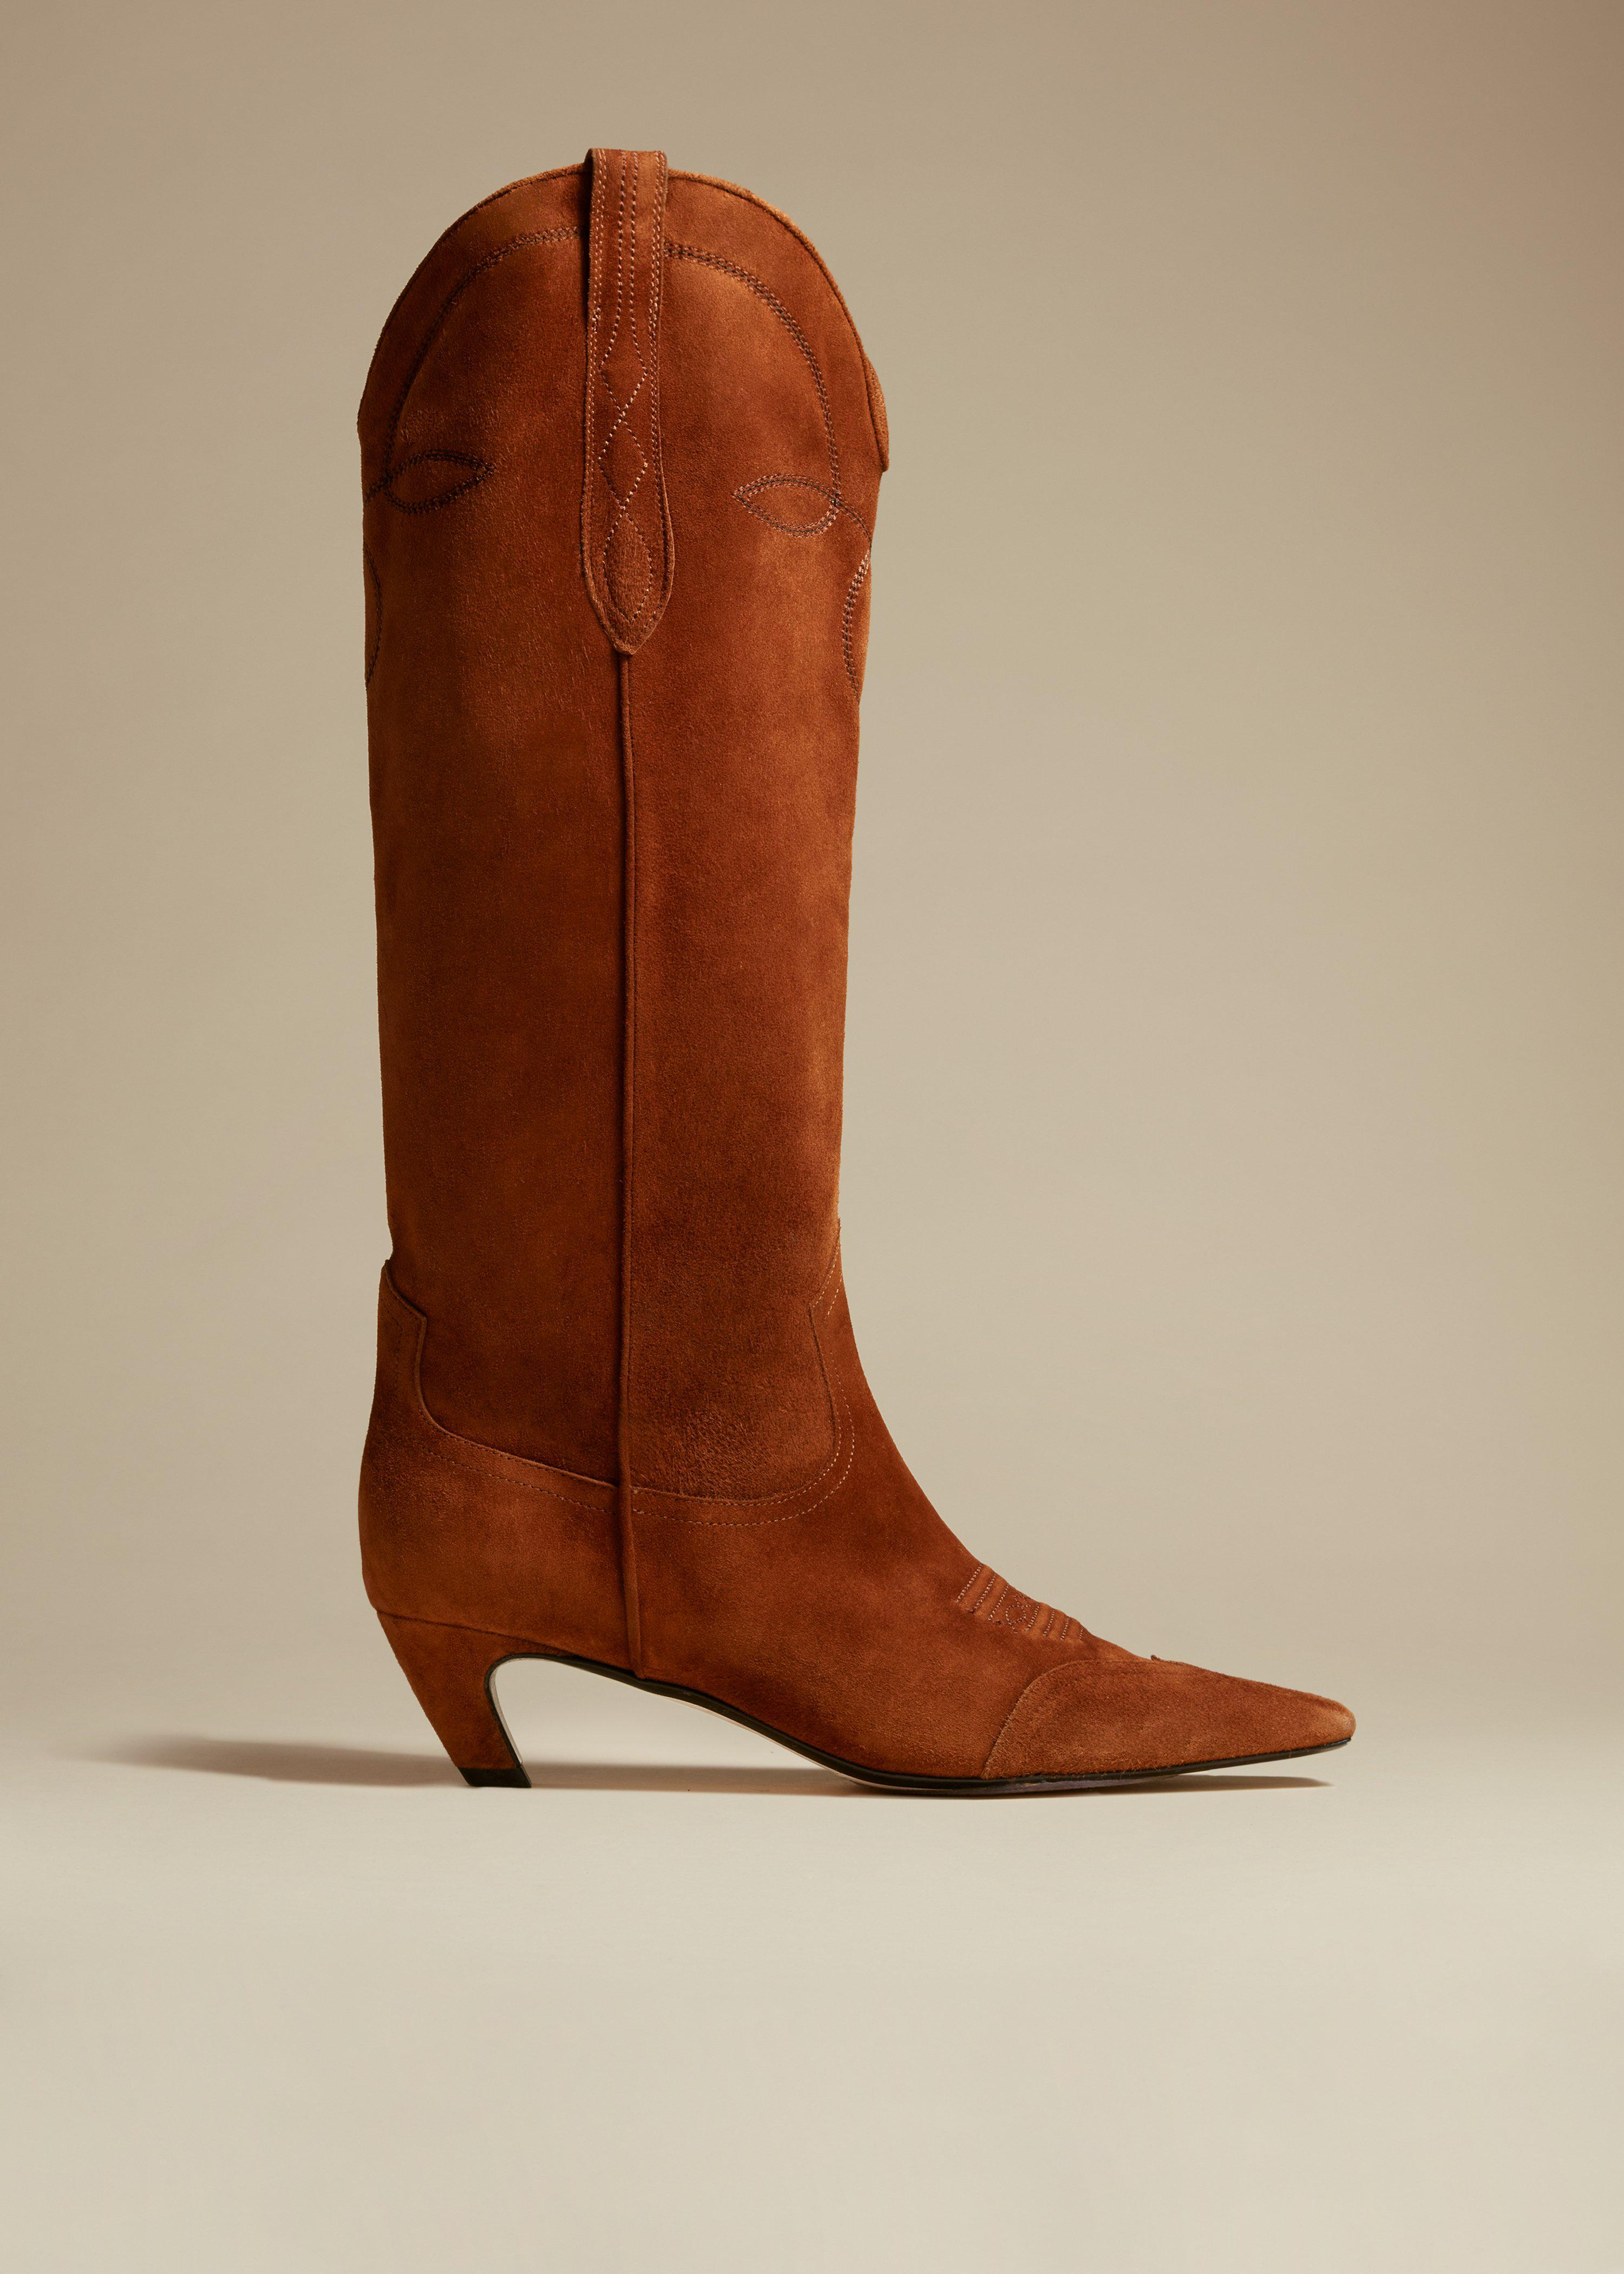 The Dallas Knee High Boot in Caramel Suede